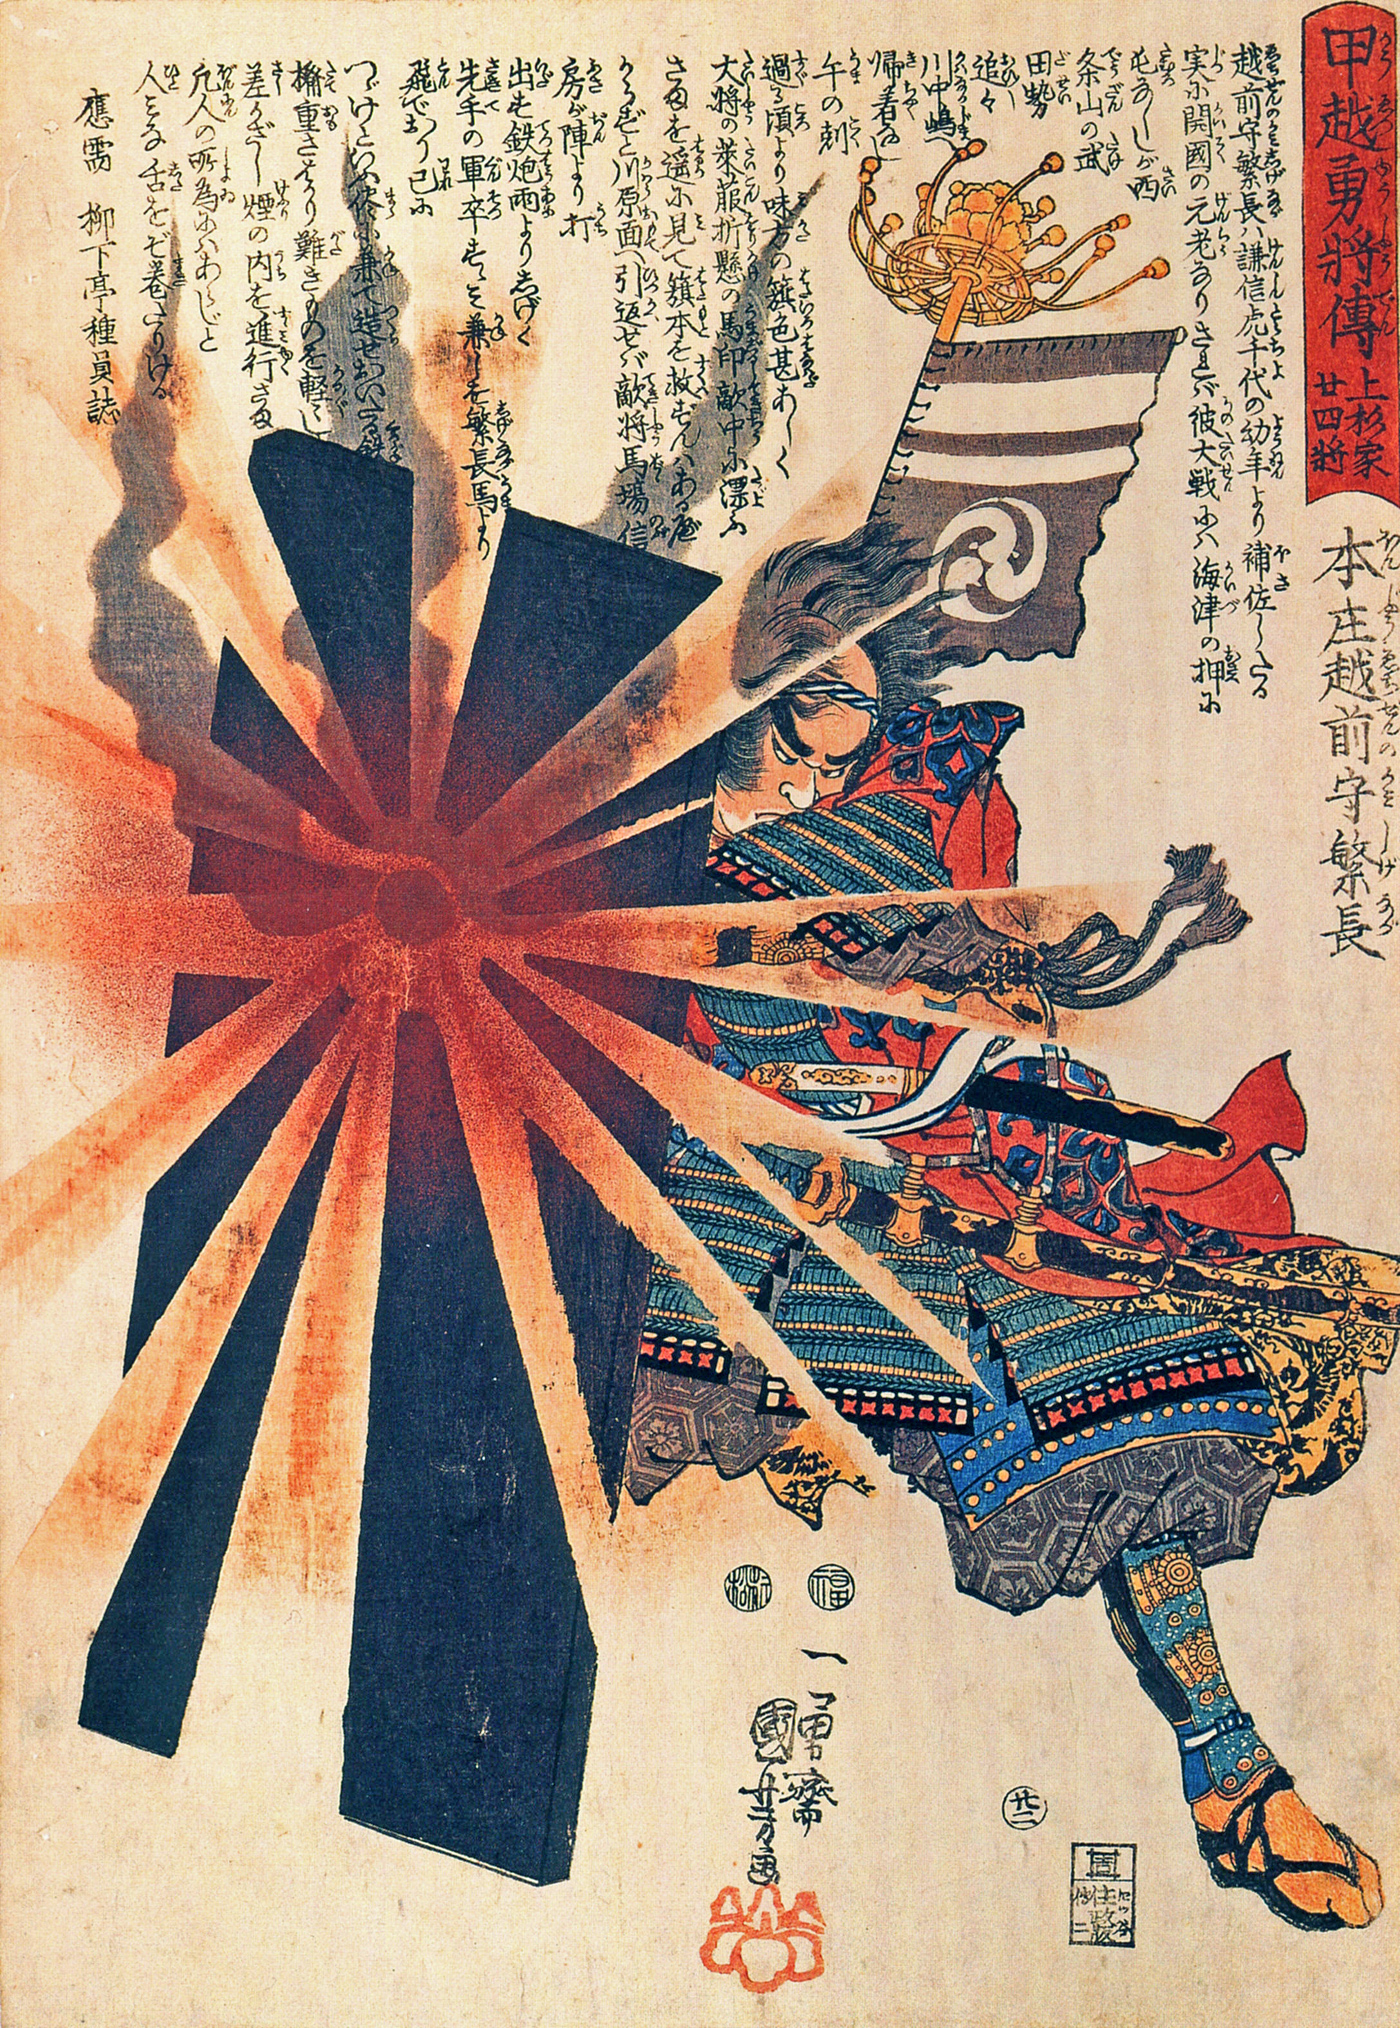 http://upload.wikimedia.org/wikipedia/commons/e/e1/Honjo_Shigenaga_parriying_an_exploding_shell.jpg